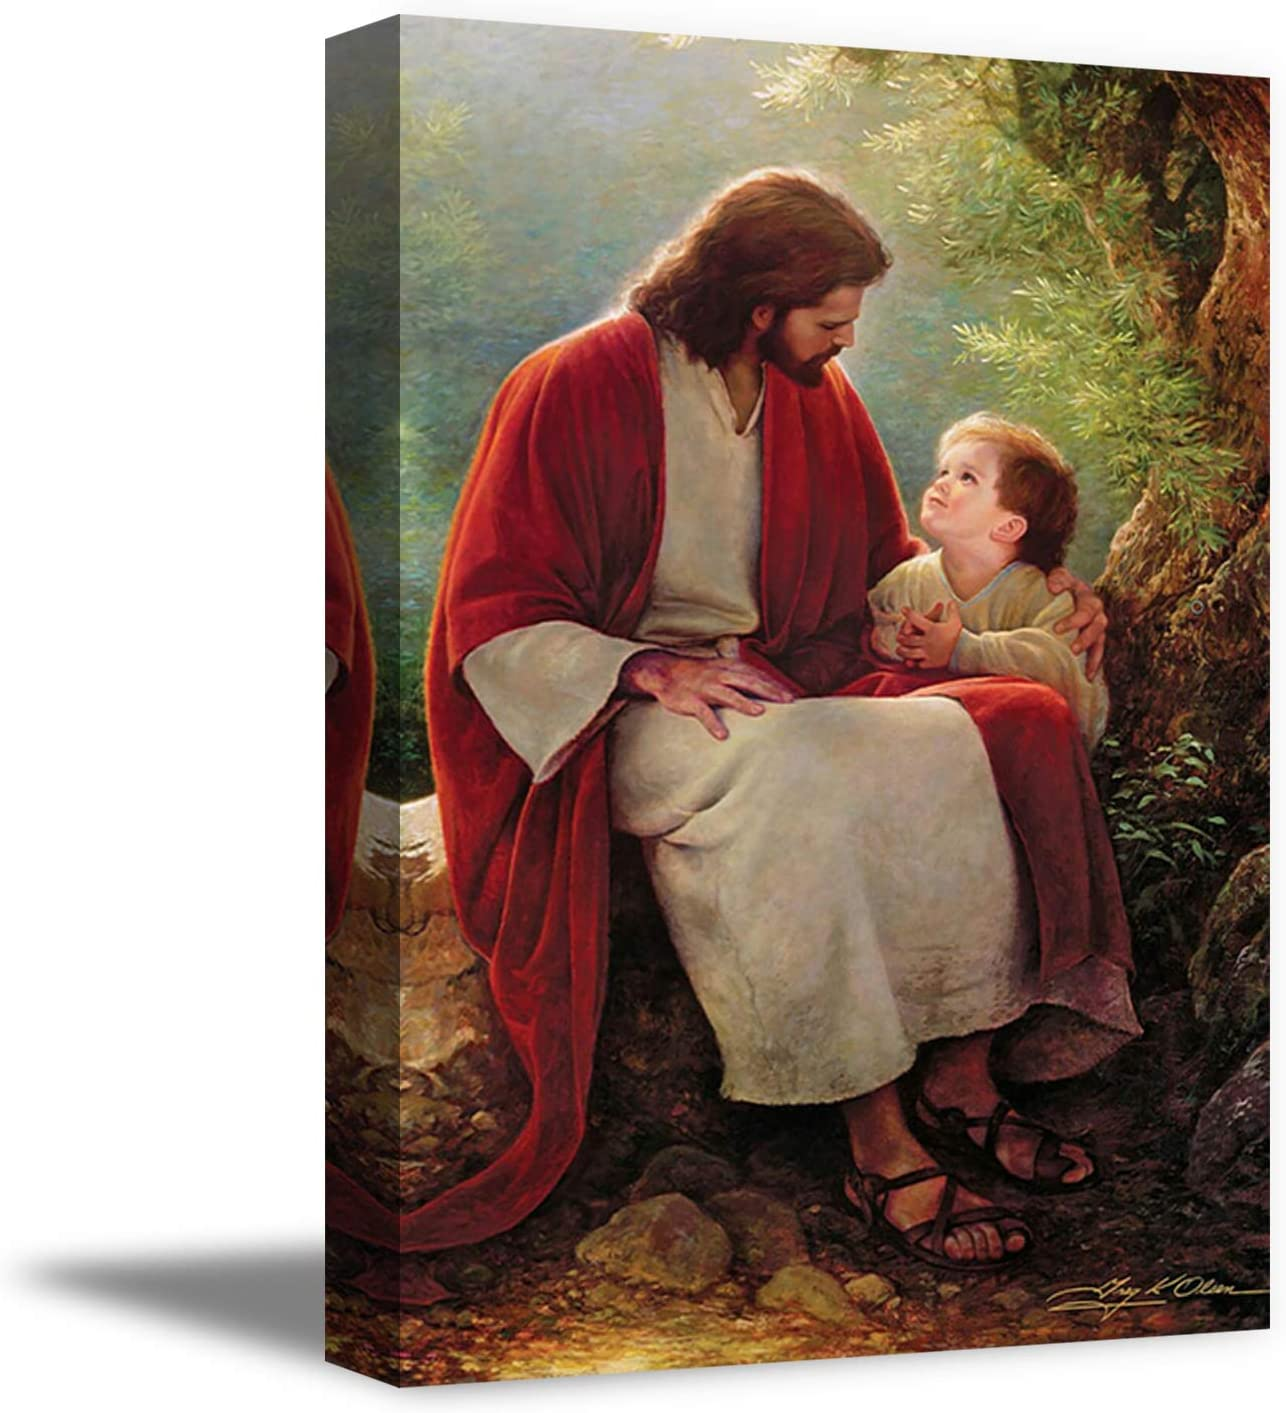 Funny Ugly Christmas Sweater Christian Canvas Wall Art Jesus and Little Boy Home Decor Prints 8